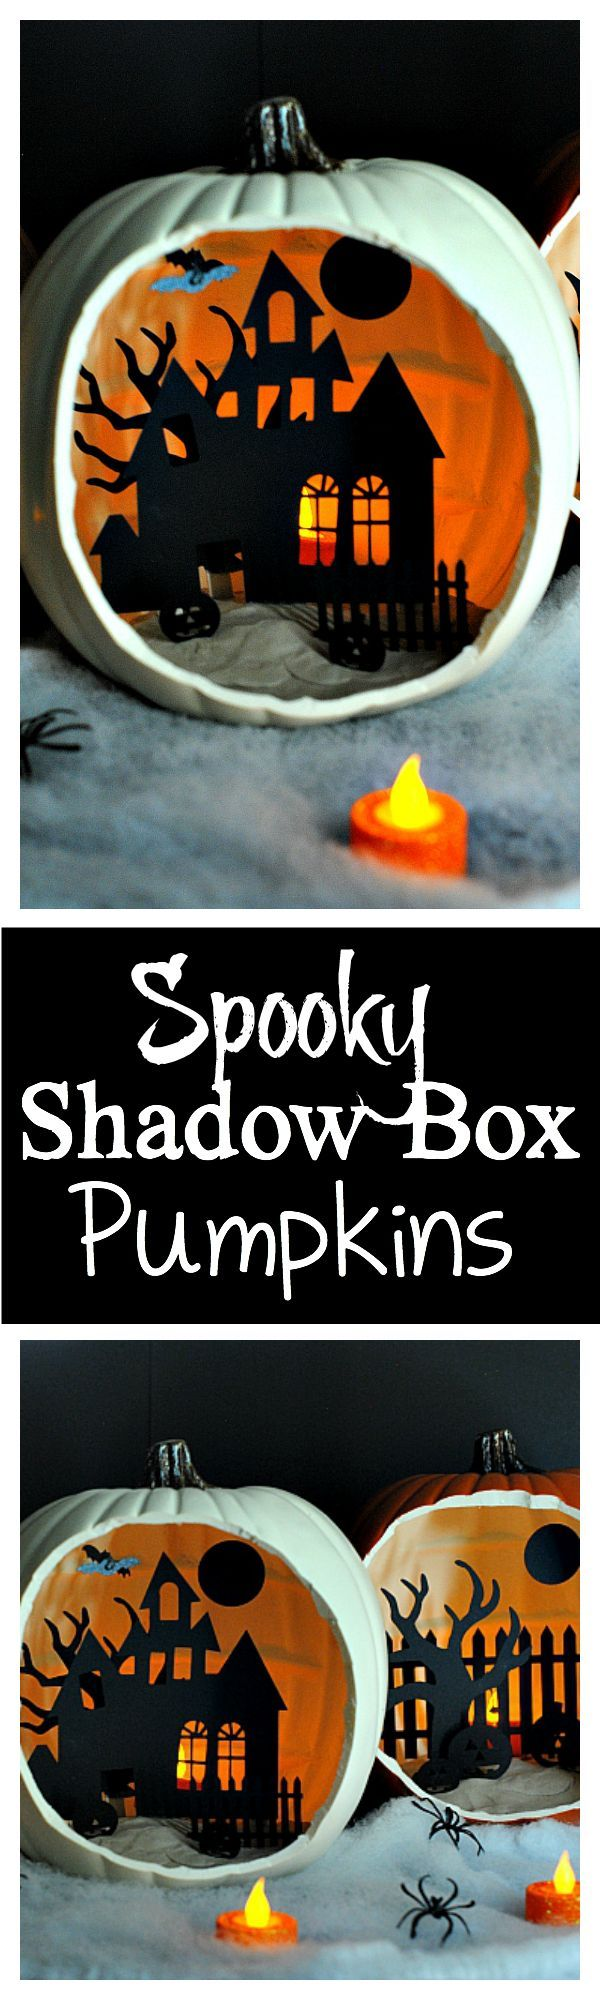 great halloween decoration shadow box pumpkins - Story About Halloween